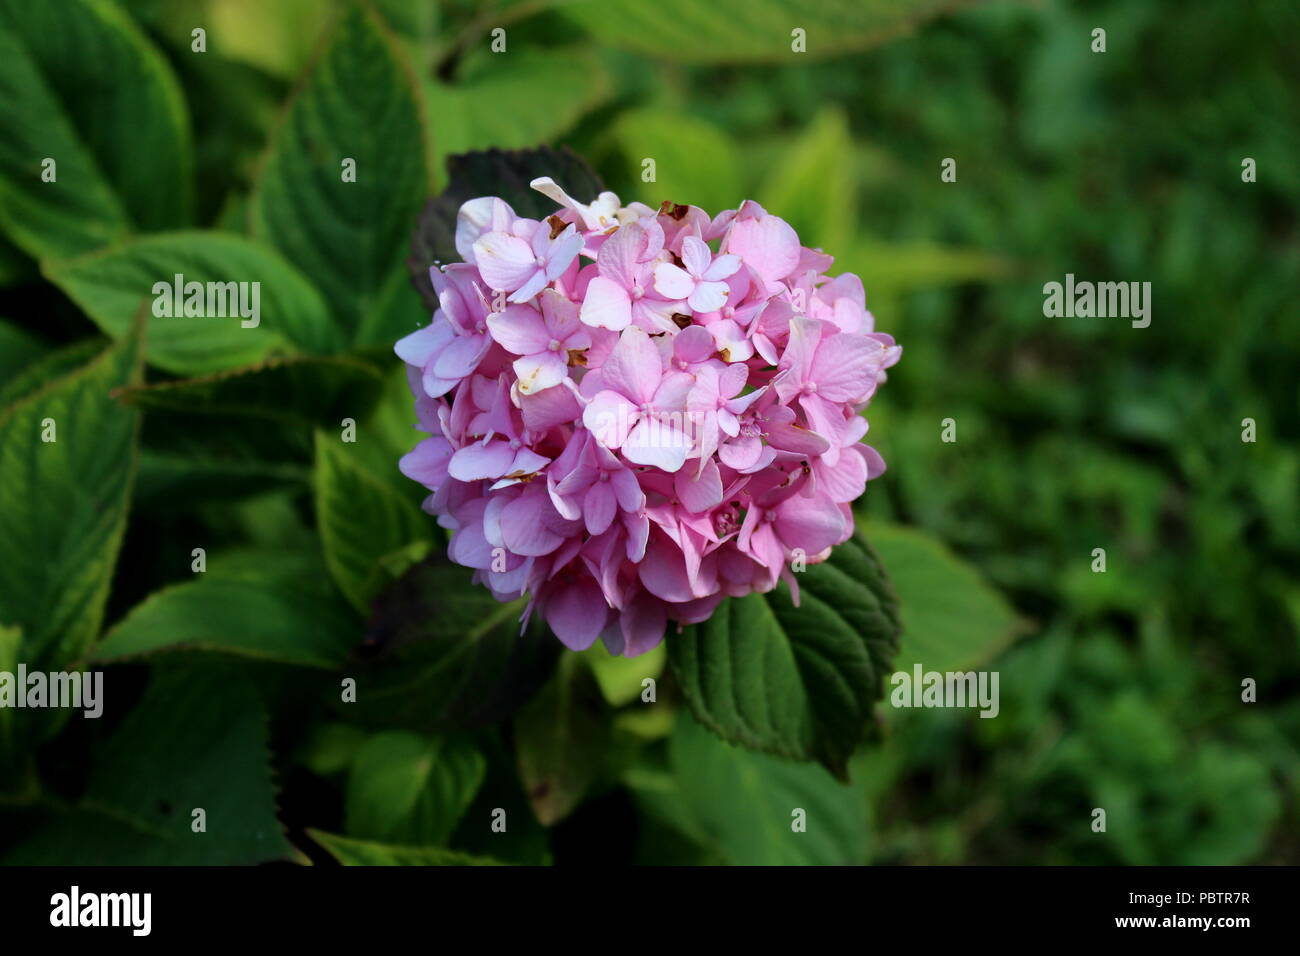 Hydrangea or hortensia garden shrub with multiple small dark pink hydrangea or hortensia garden shrub with multiple small dark pink flowers with pointy petals surrounded with thick green leaves and other garden veget mightylinksfo